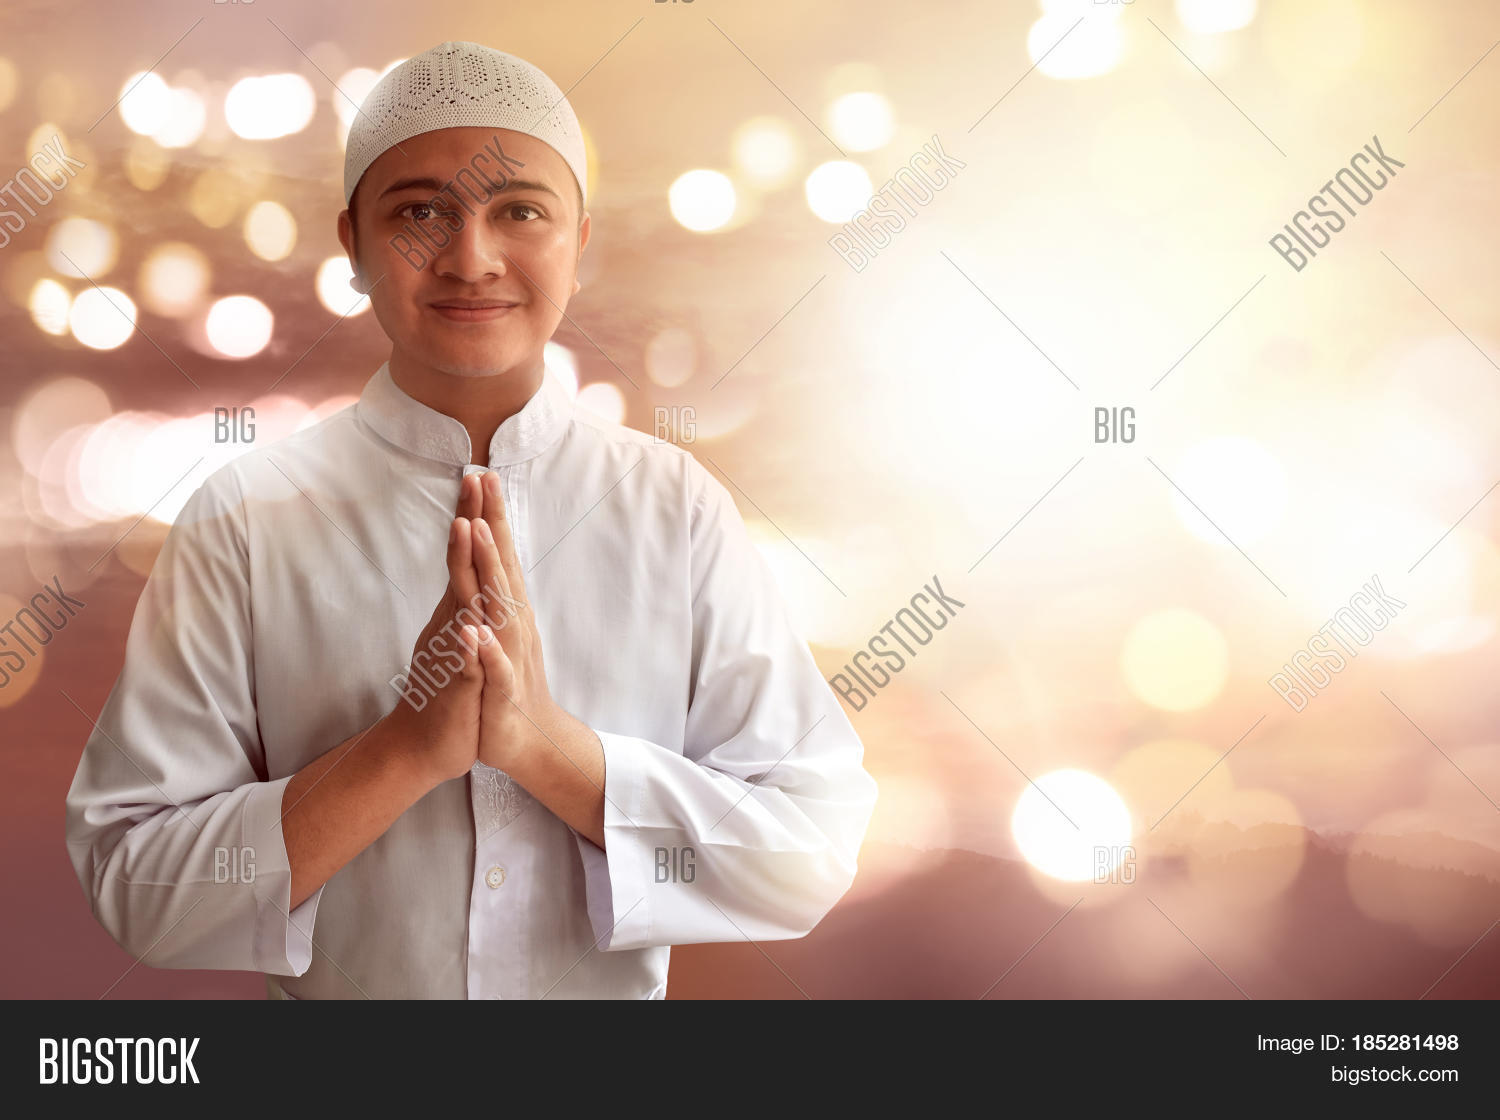 Muslim Man Smiling Image Photo Free Trial Bigstock